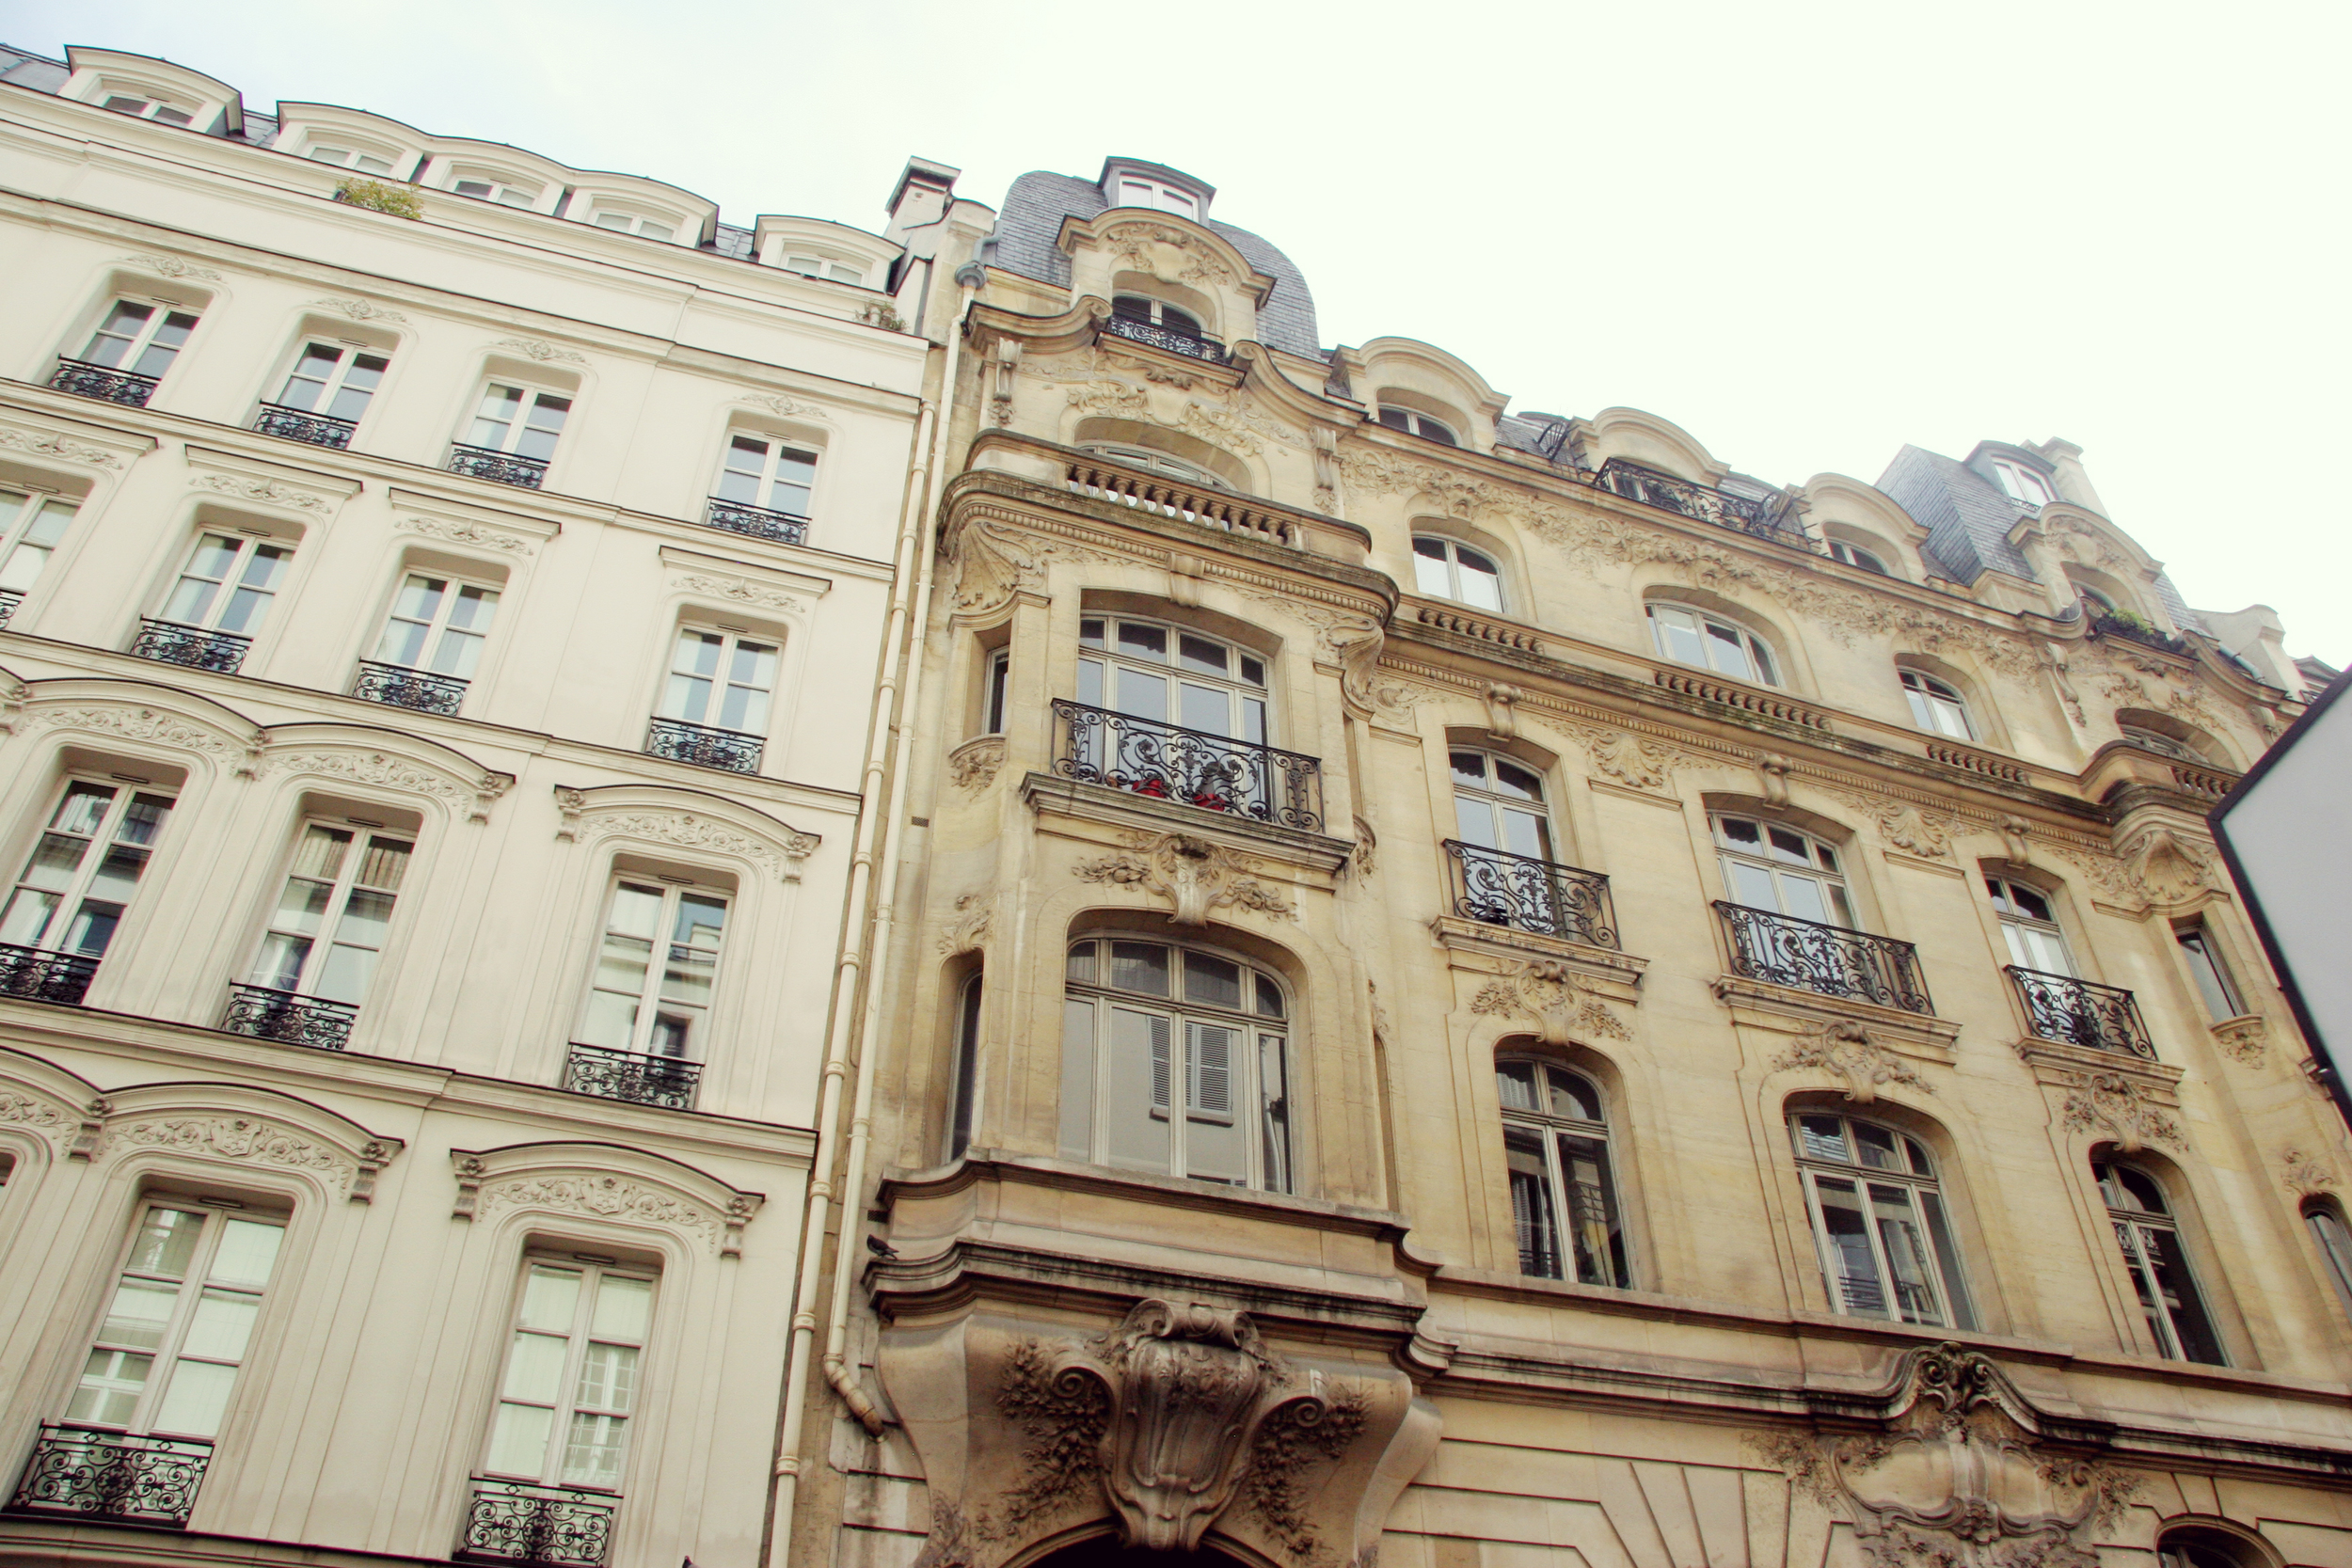 These perfectly Parisian apartments.